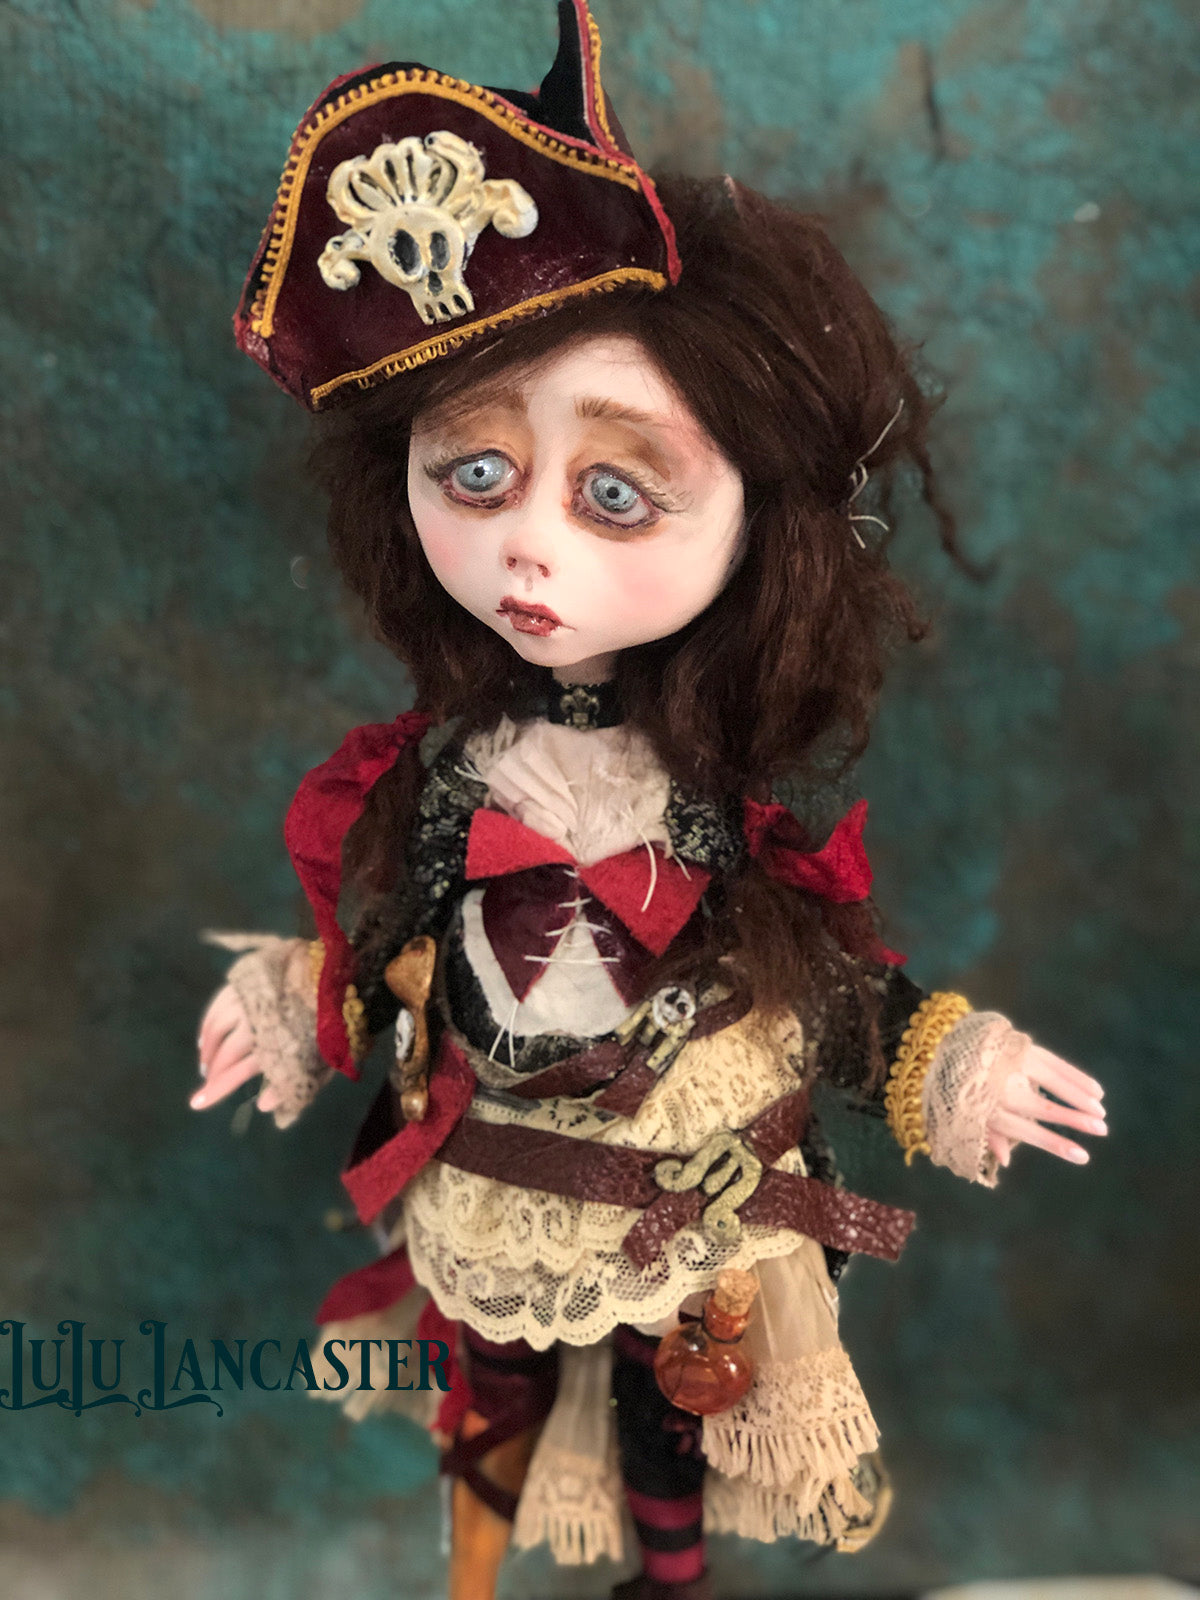 Lottie Lostleg the Pirate OOAK LuLu Lancaster Art Doll